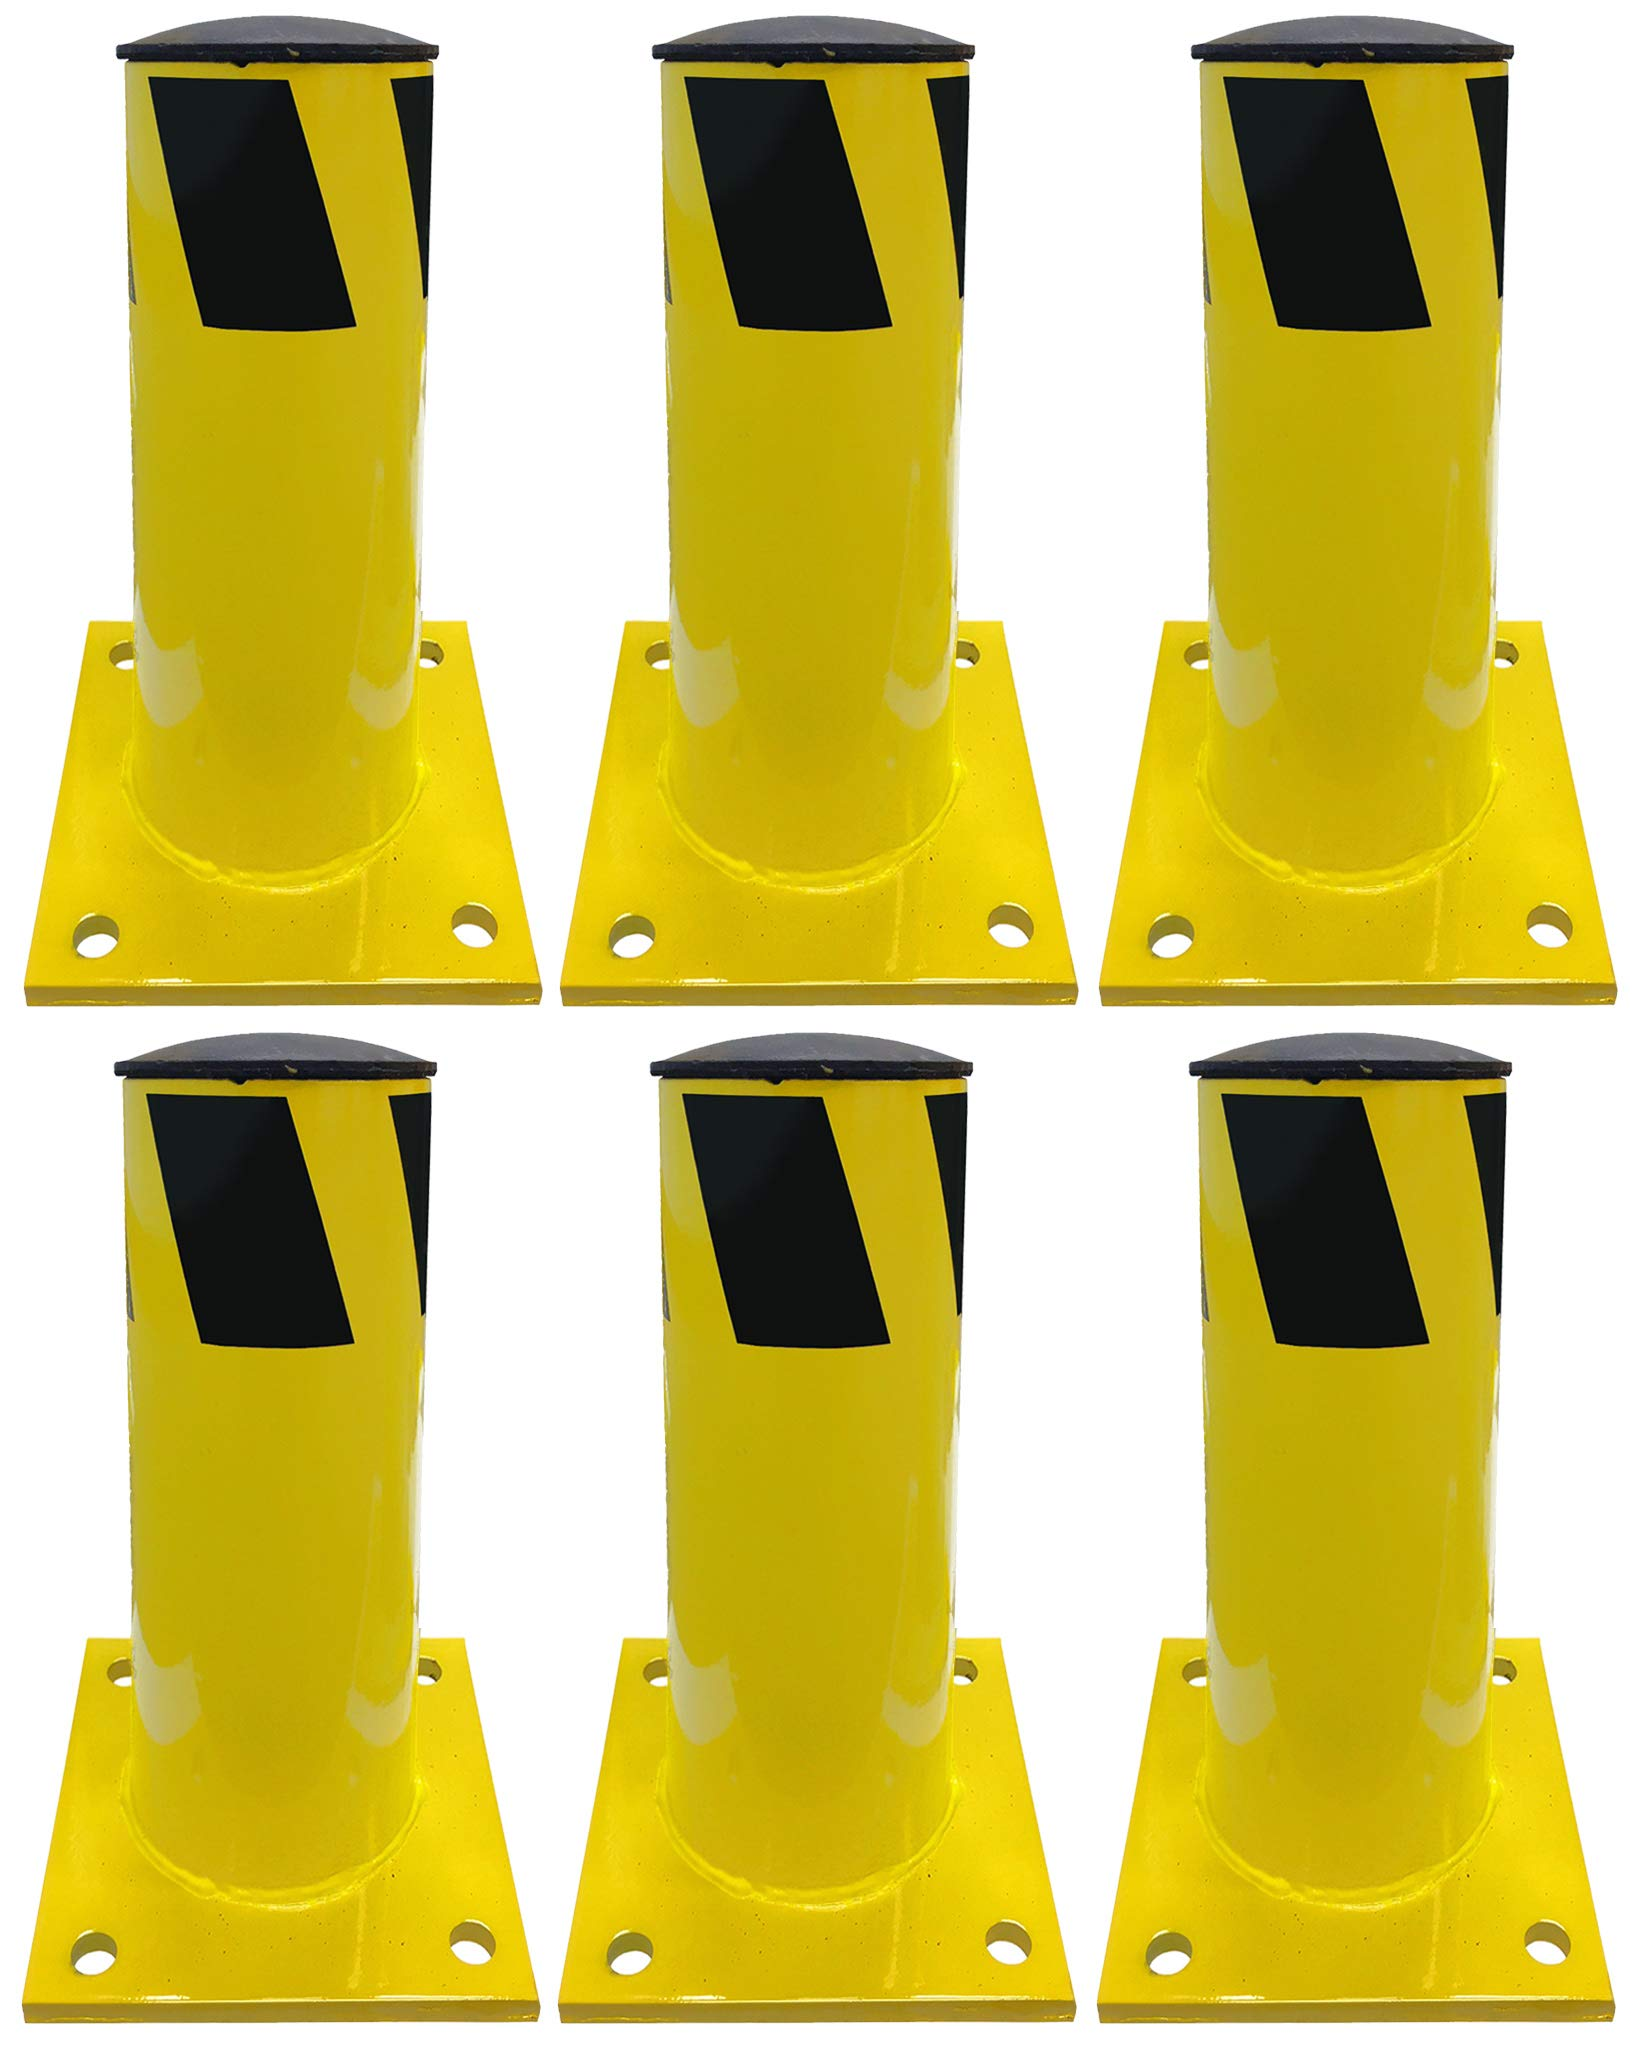 Electriduct 1 Foot Steel Pipe Safety Bollard Post Yellow/Black Stripe - Parking Lot Traffic Barrier (12'' Height - 4.5'' OD) - Pack of 6